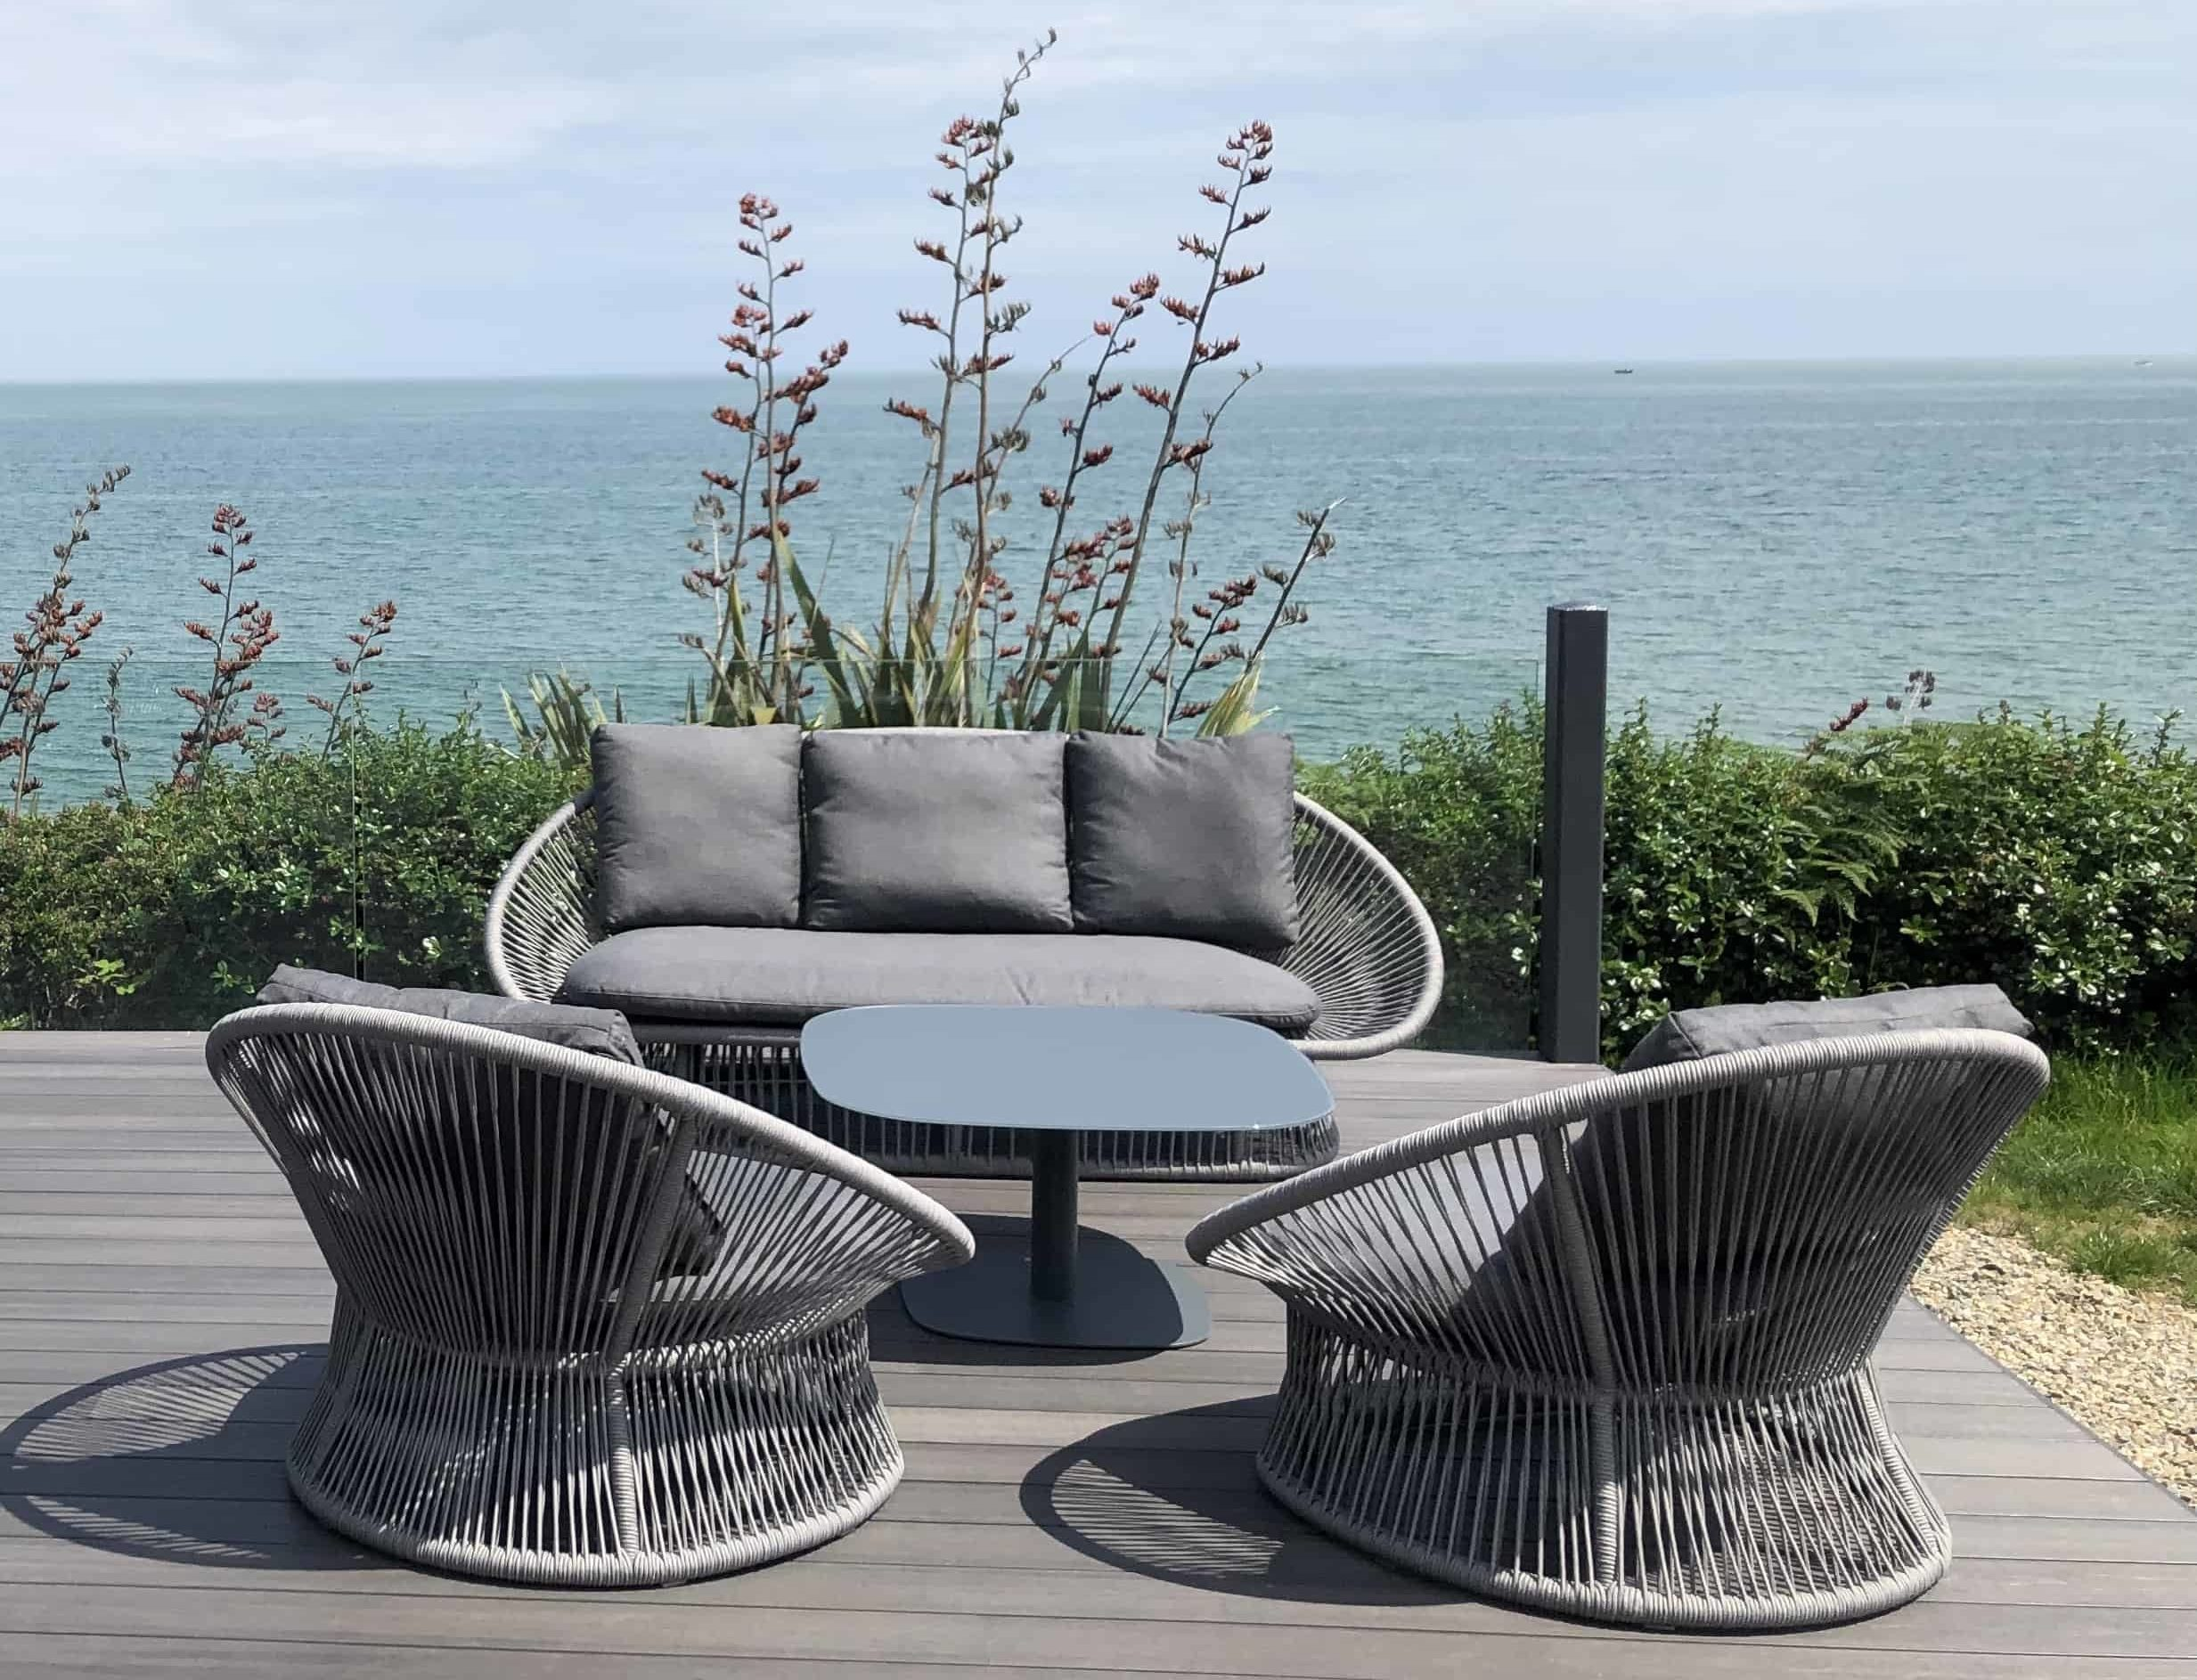 Spade Alu Round Rope Outdoor Furniture Collection Garden Furniture Garden Sofa Sets And Lounging Garden Furniture Barbecues Outdoor Ie